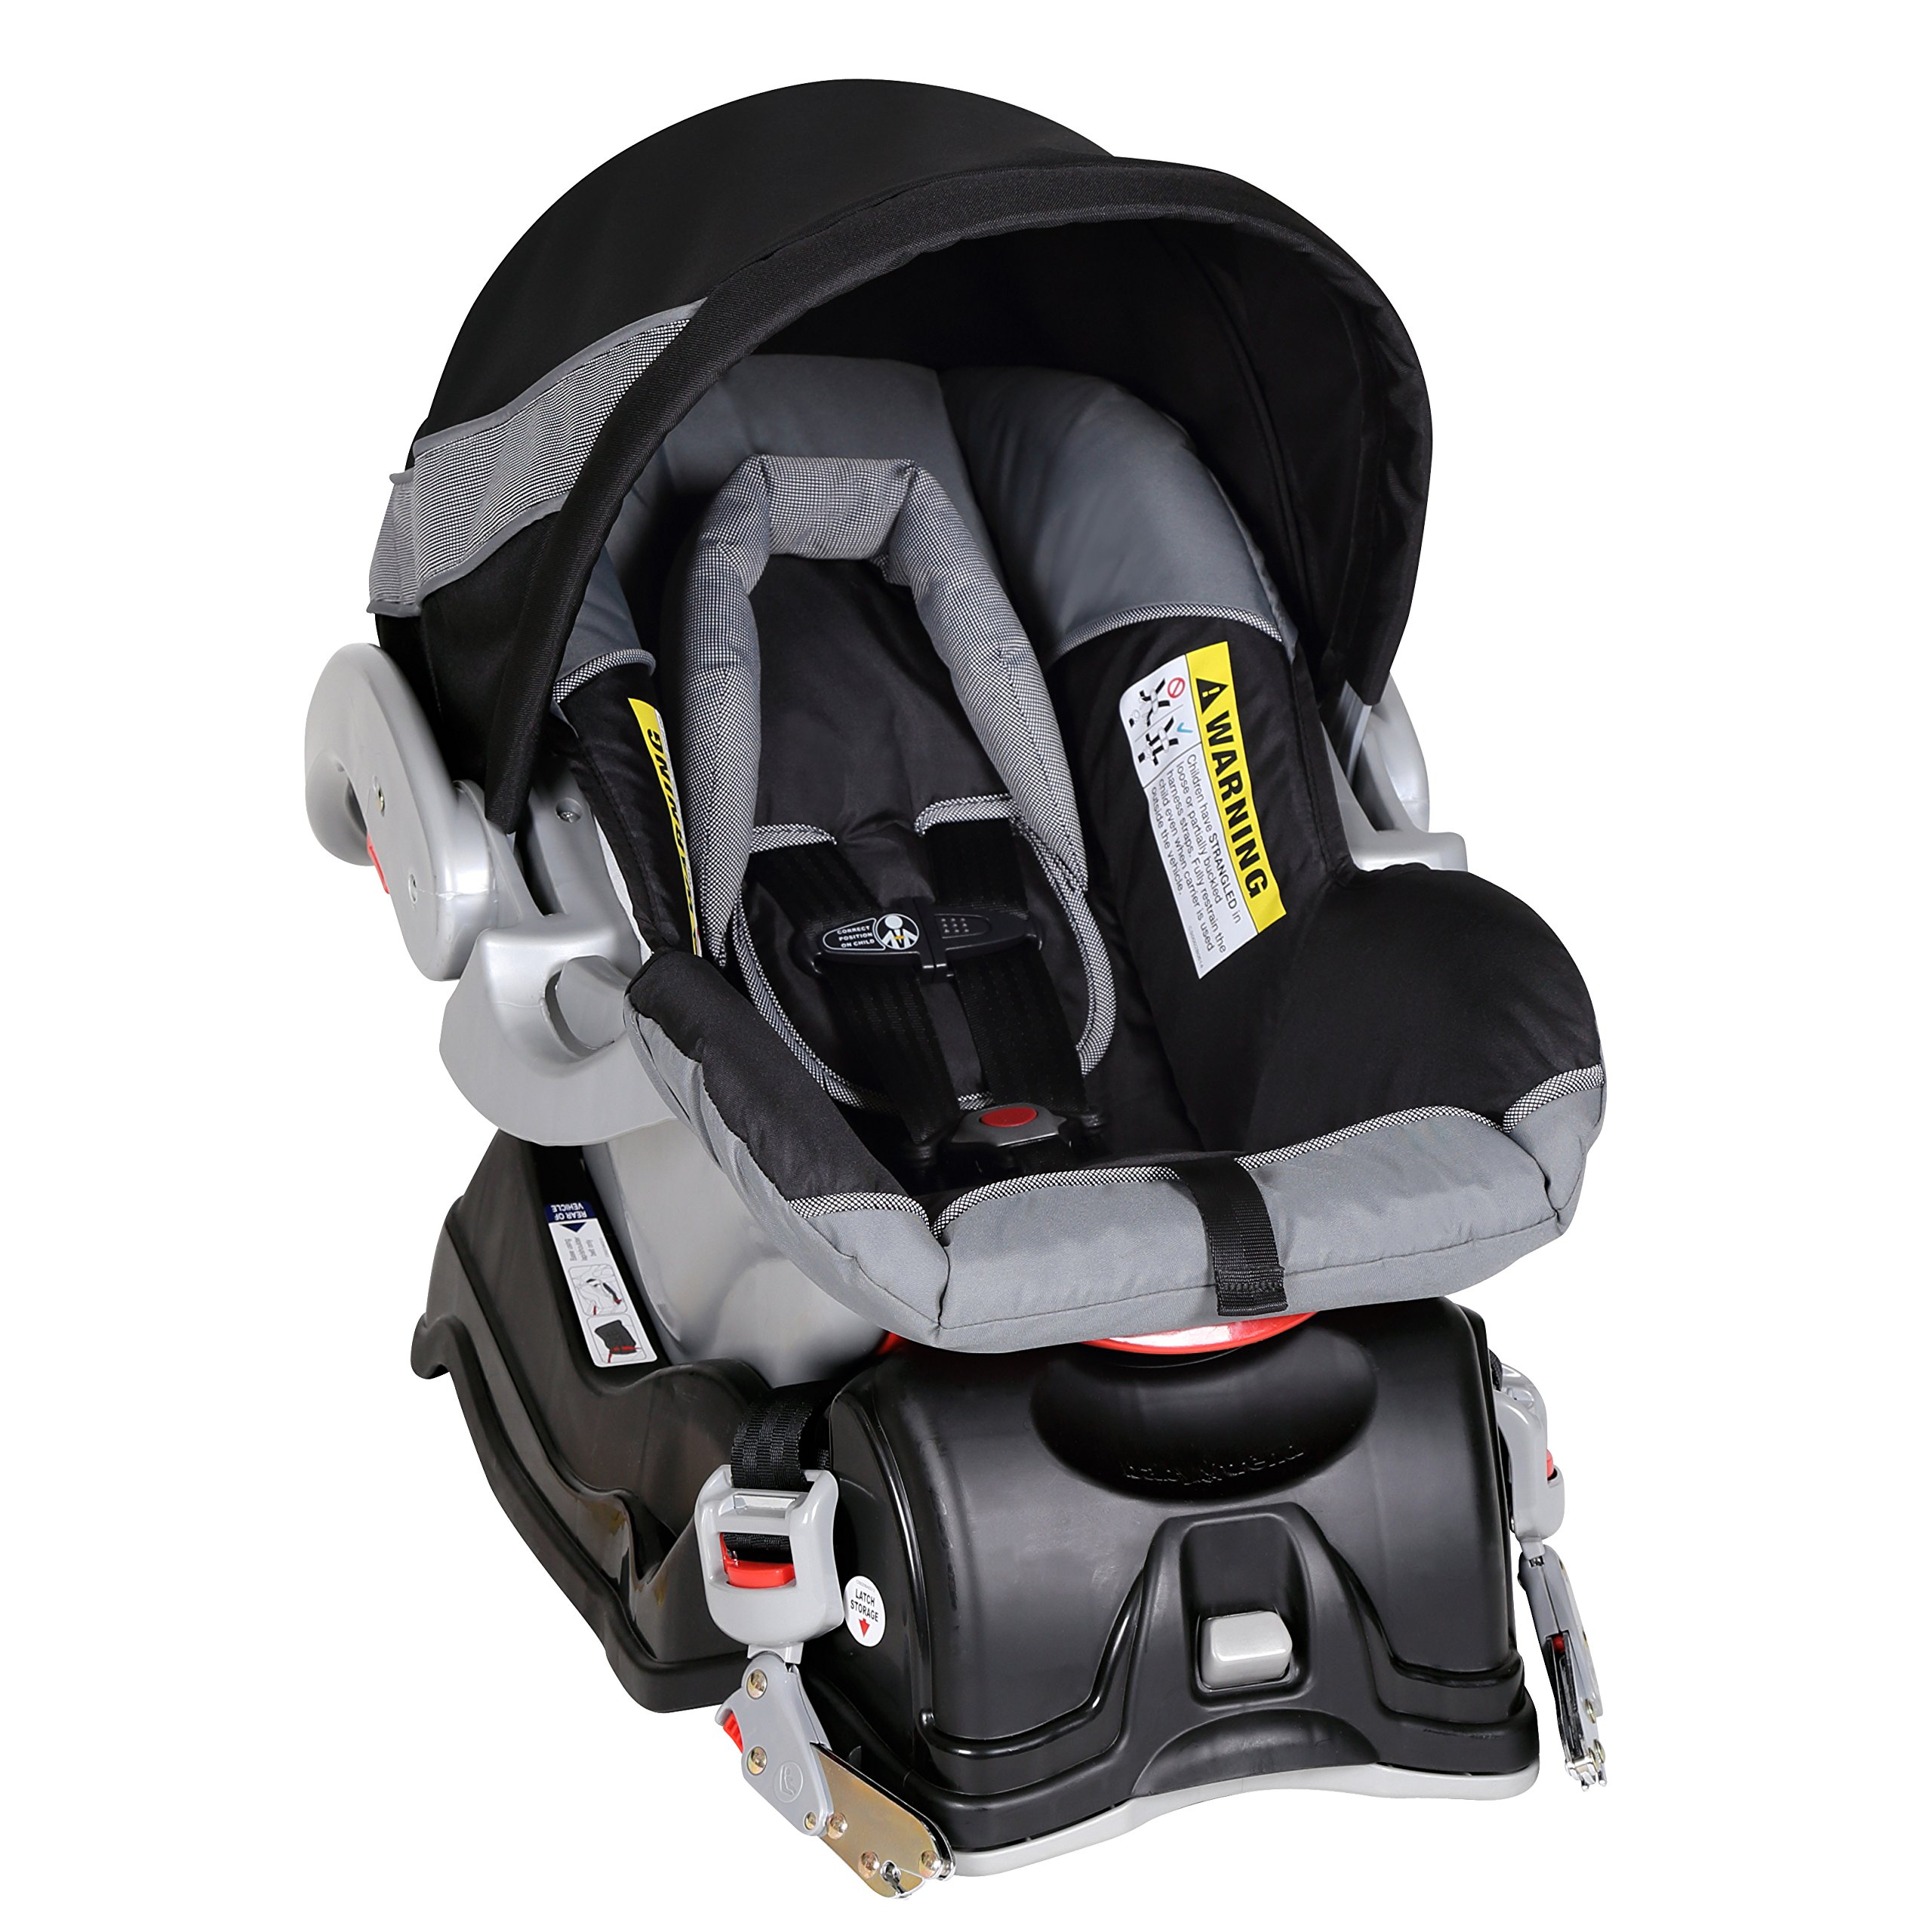 Baby Trend Expedition Jogger Travel System, Millennium White by Baby Trend (Image #2)